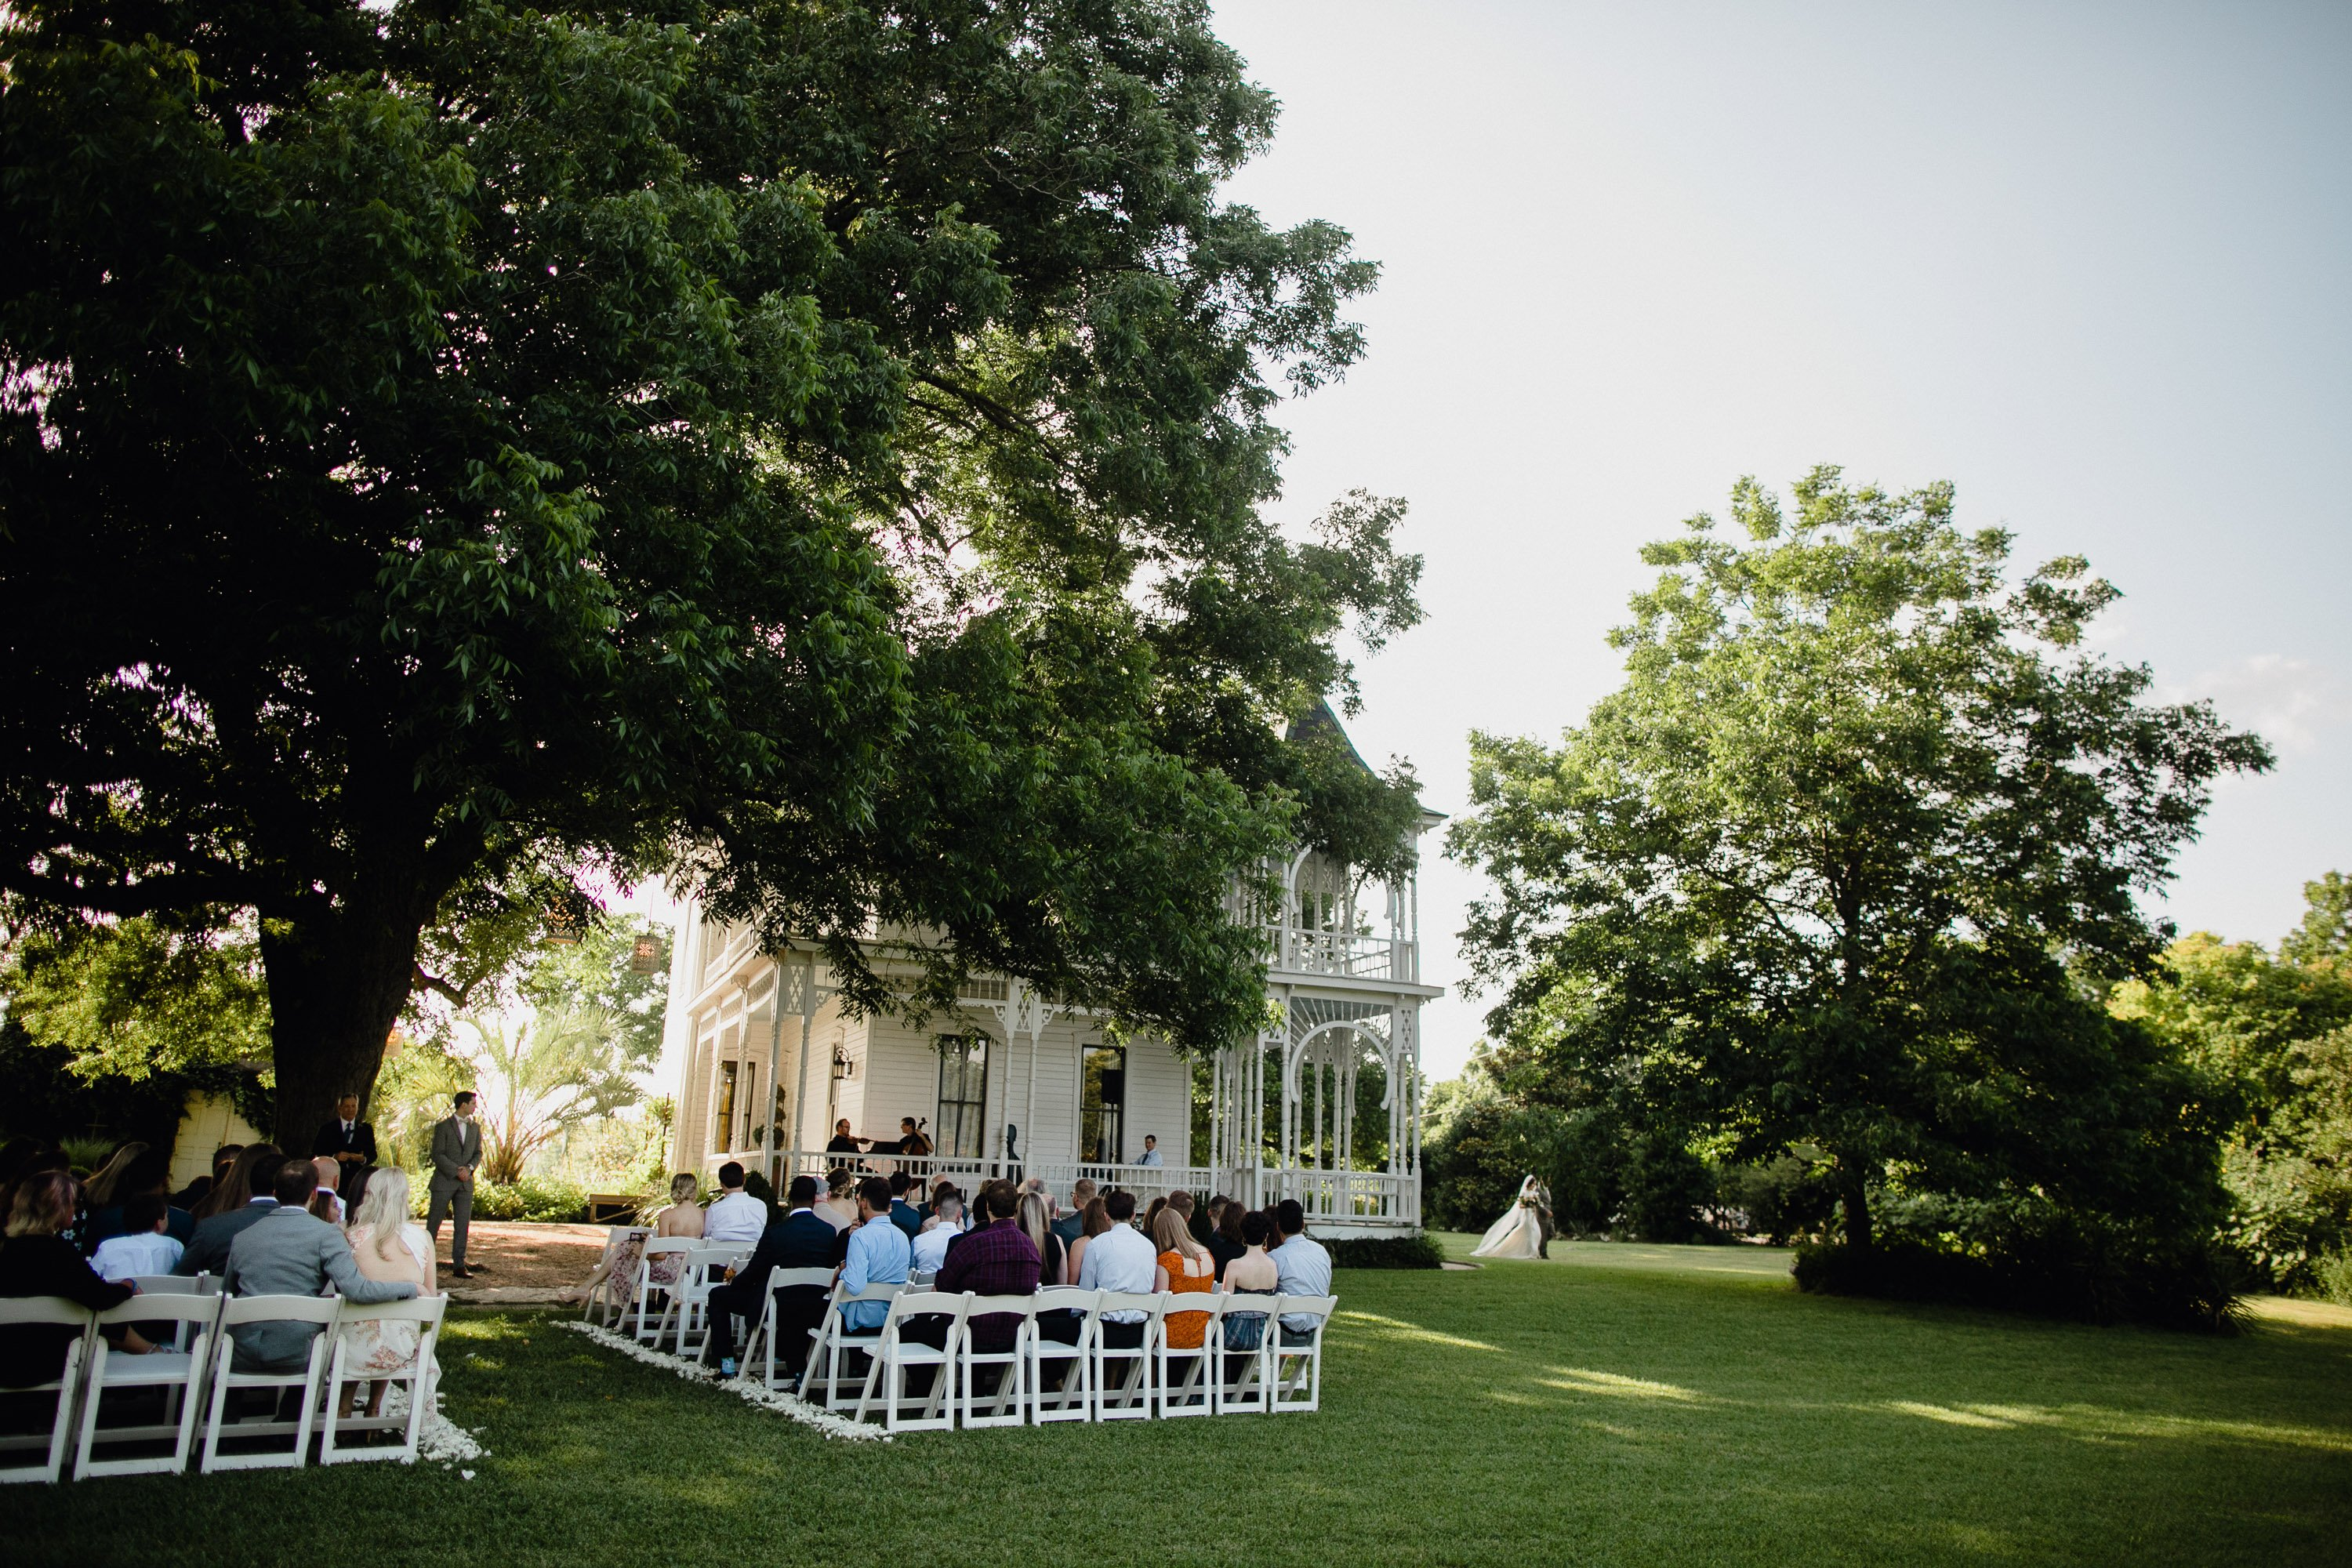 barr mansion wedding ceremony on the lawn, wedding at the barr mansion in austin texas, boho wedding at barr mansion, austin wedding photographer